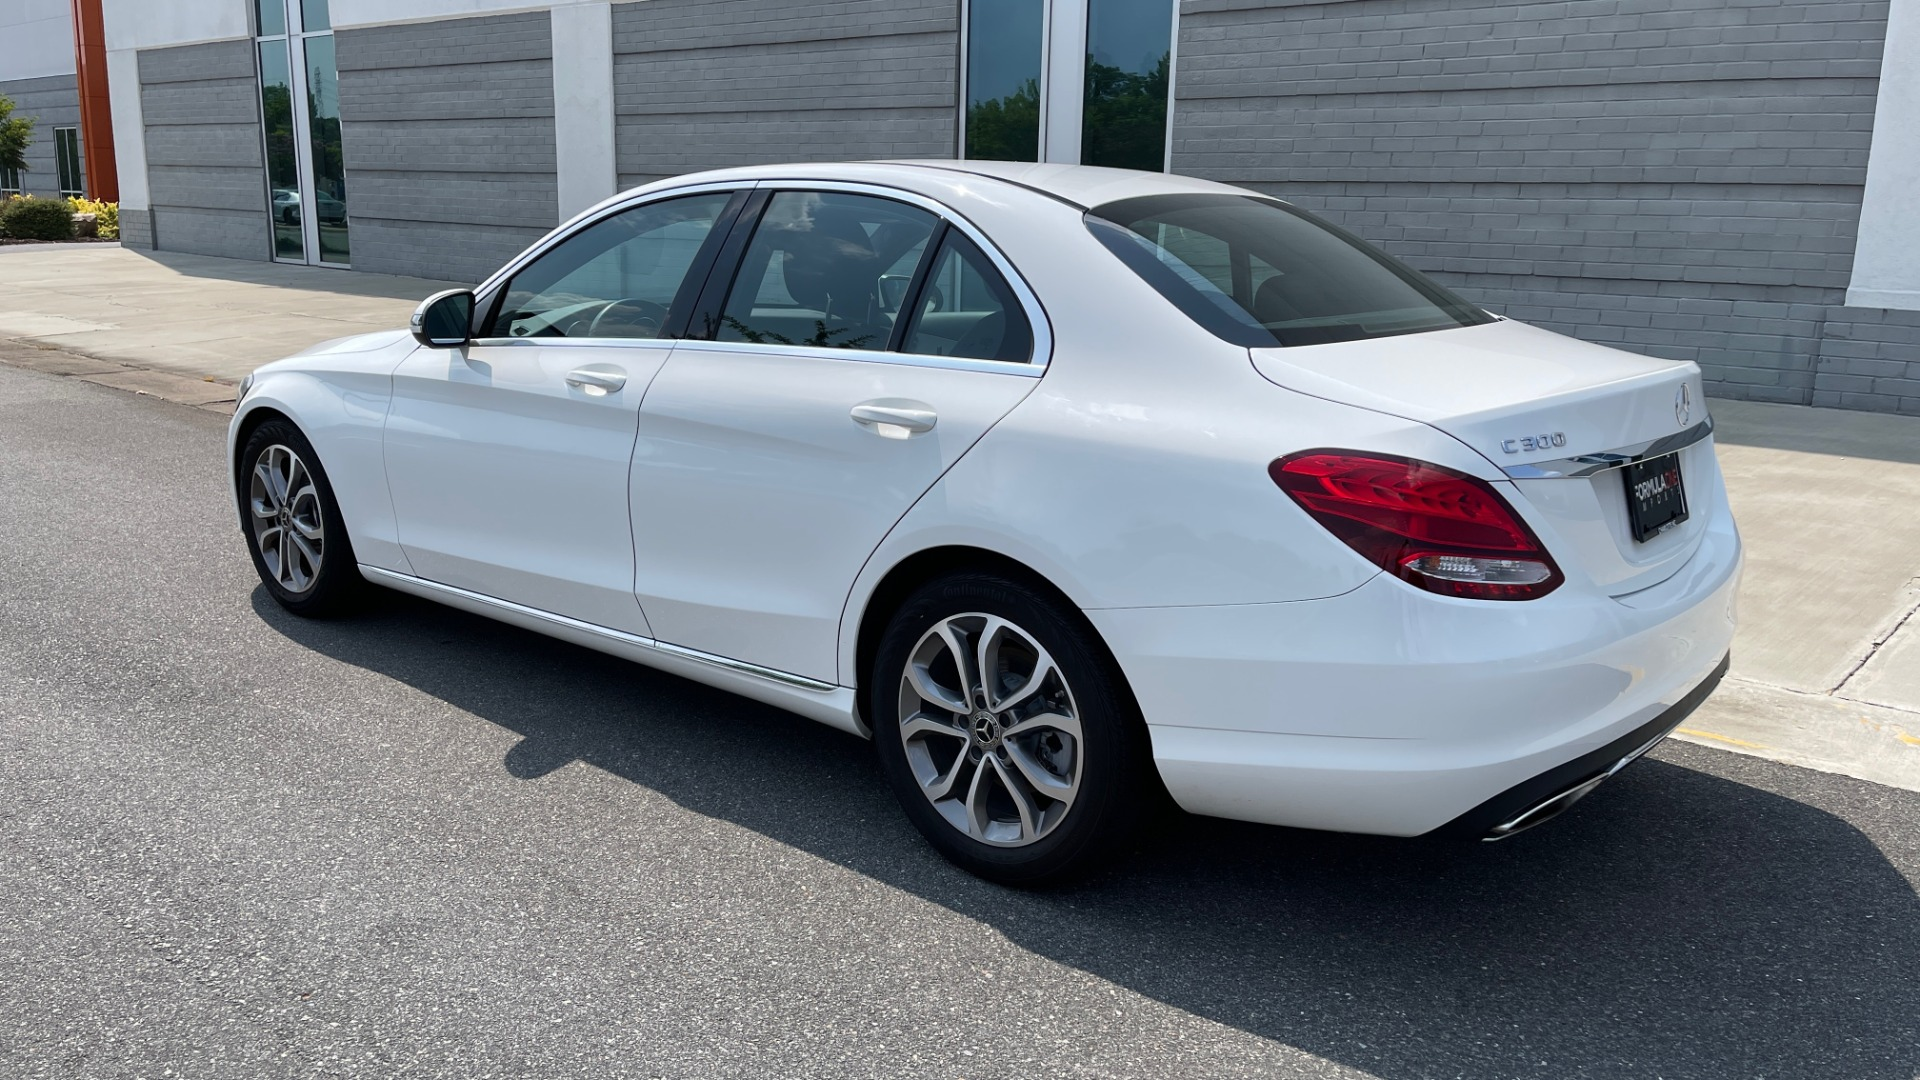 Used 2018 Mercedes-Benz C-CLASS C 300 / 2.0L / RWD / SUNROOF / APPLE~ANDROID / REARVIEW for sale $29,995 at Formula Imports in Charlotte NC 28227 5